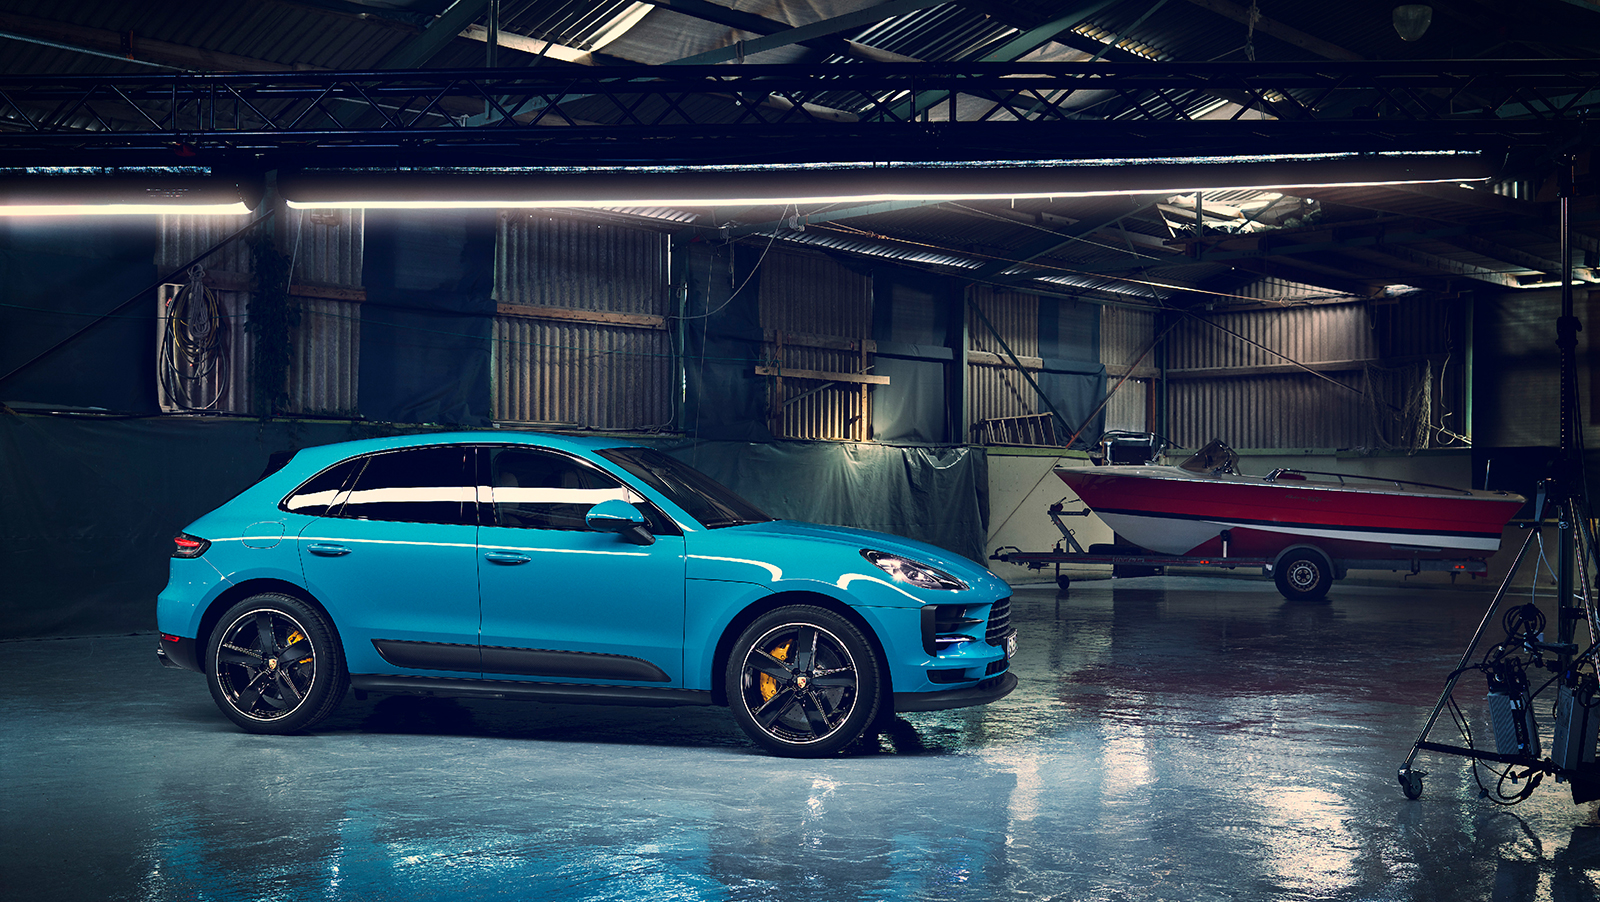 2019 Porsche Macan Facelift Adds Enhancements Inside And Out